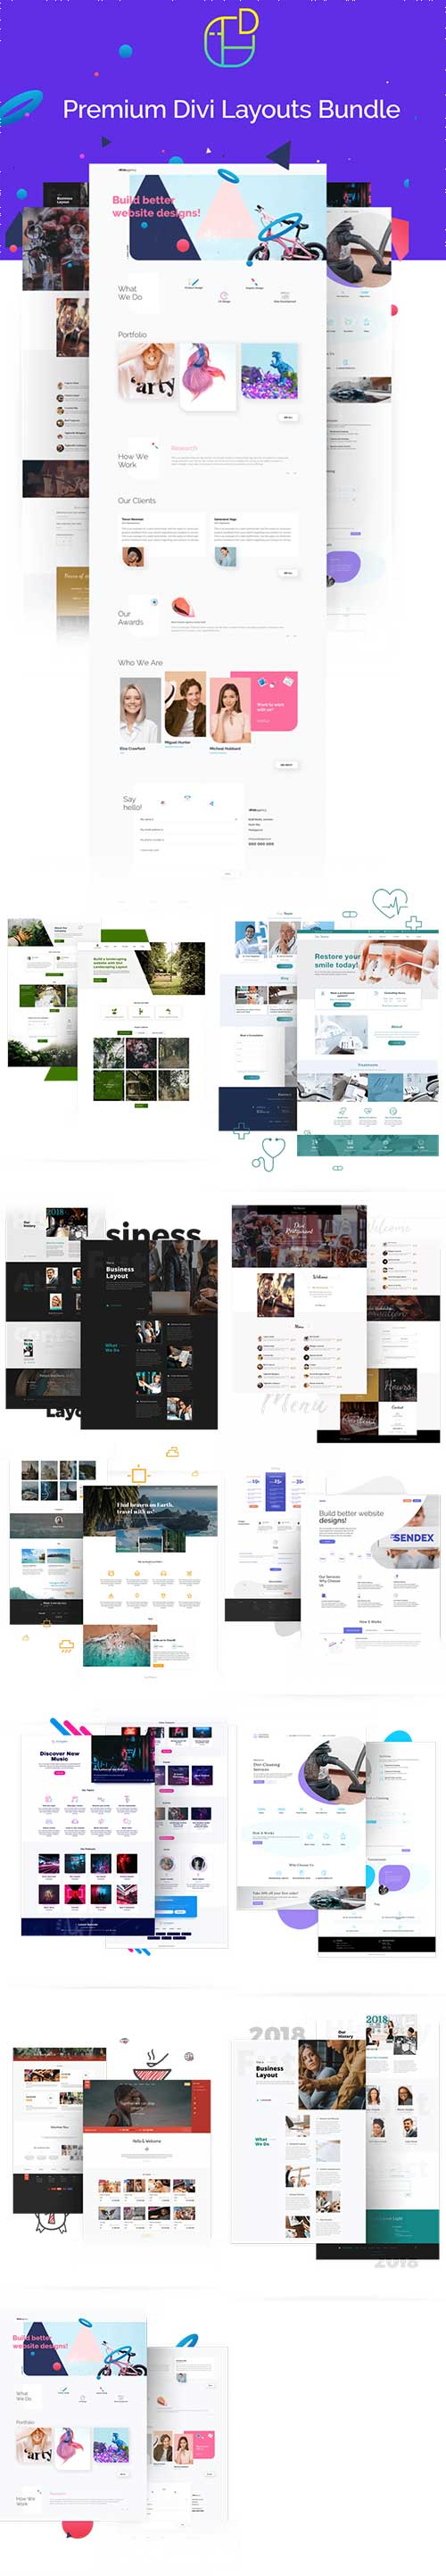 divi space layouts pack